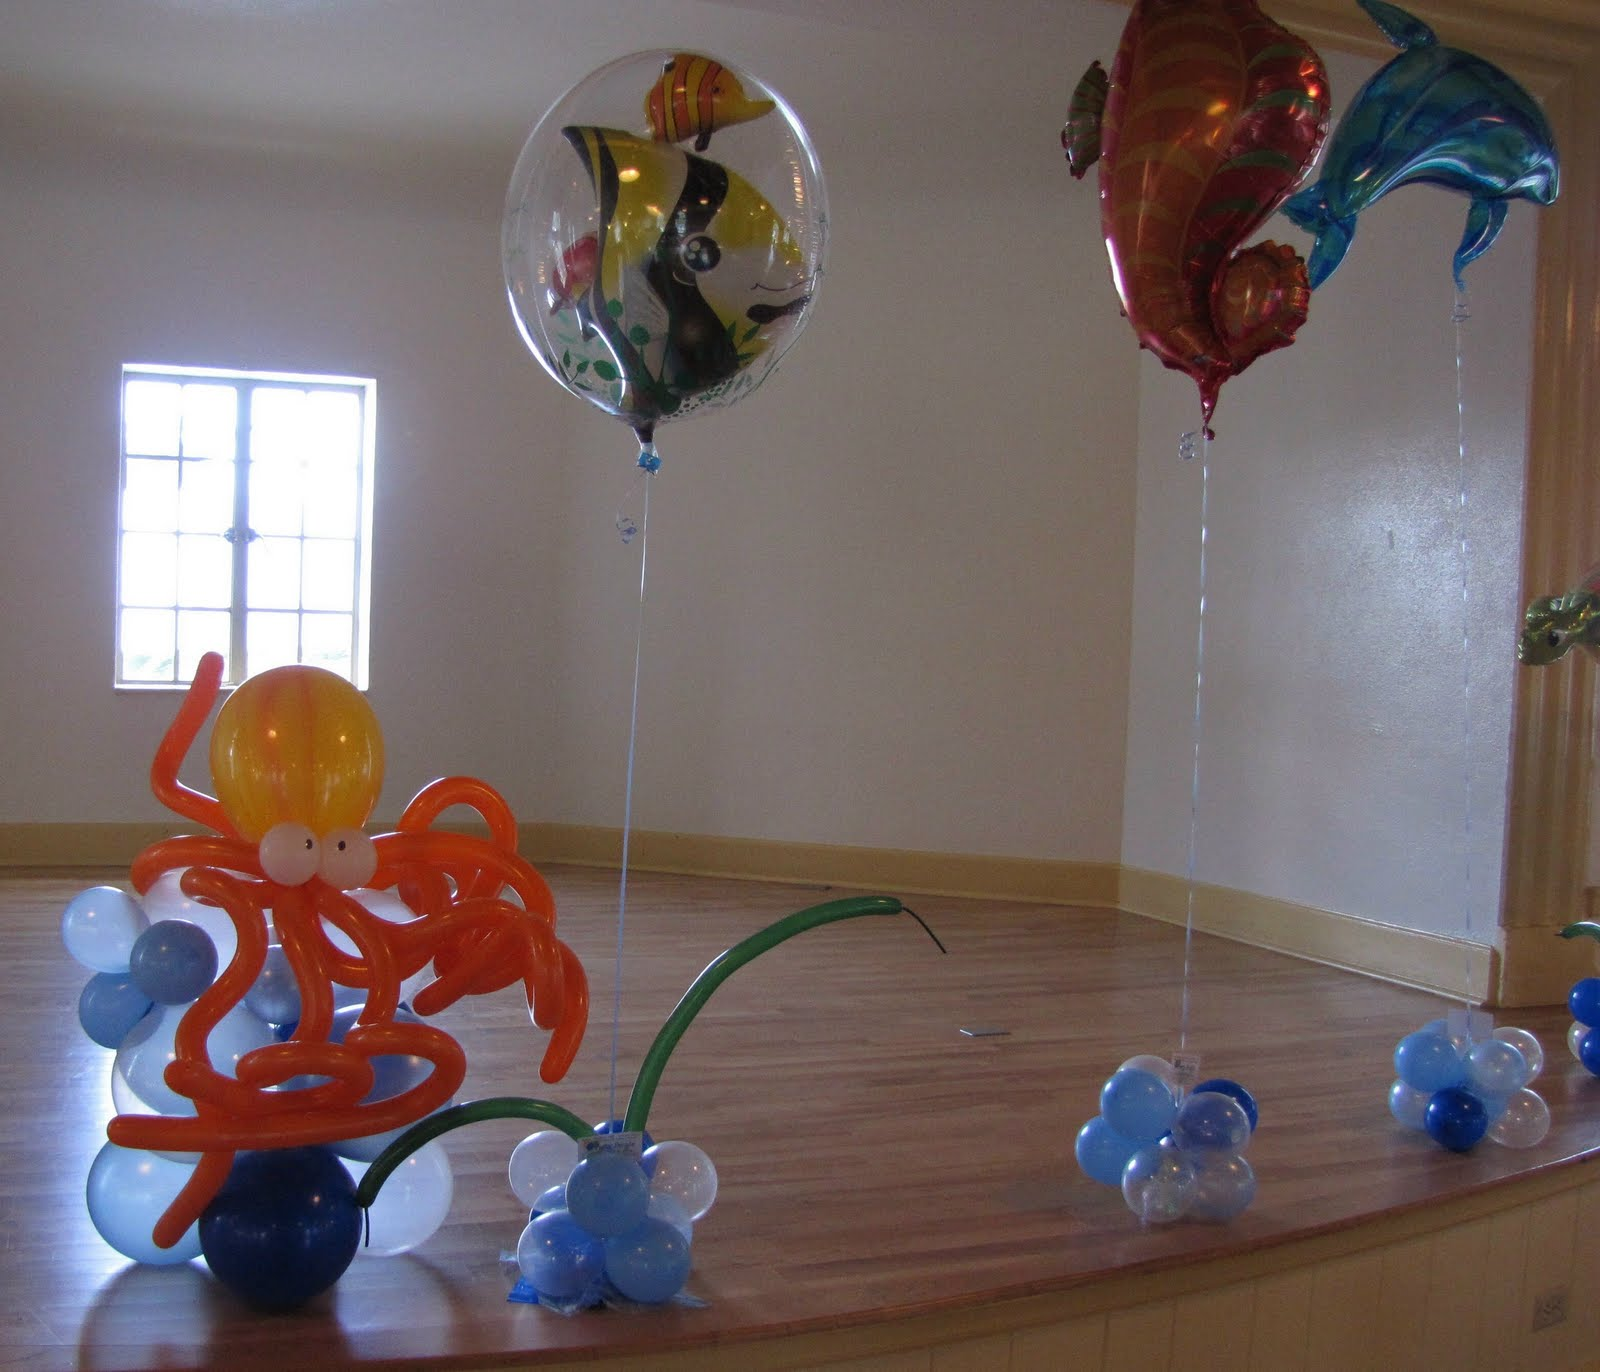 Party people event decorating company mayfair lakeland for Balloon decoration companies